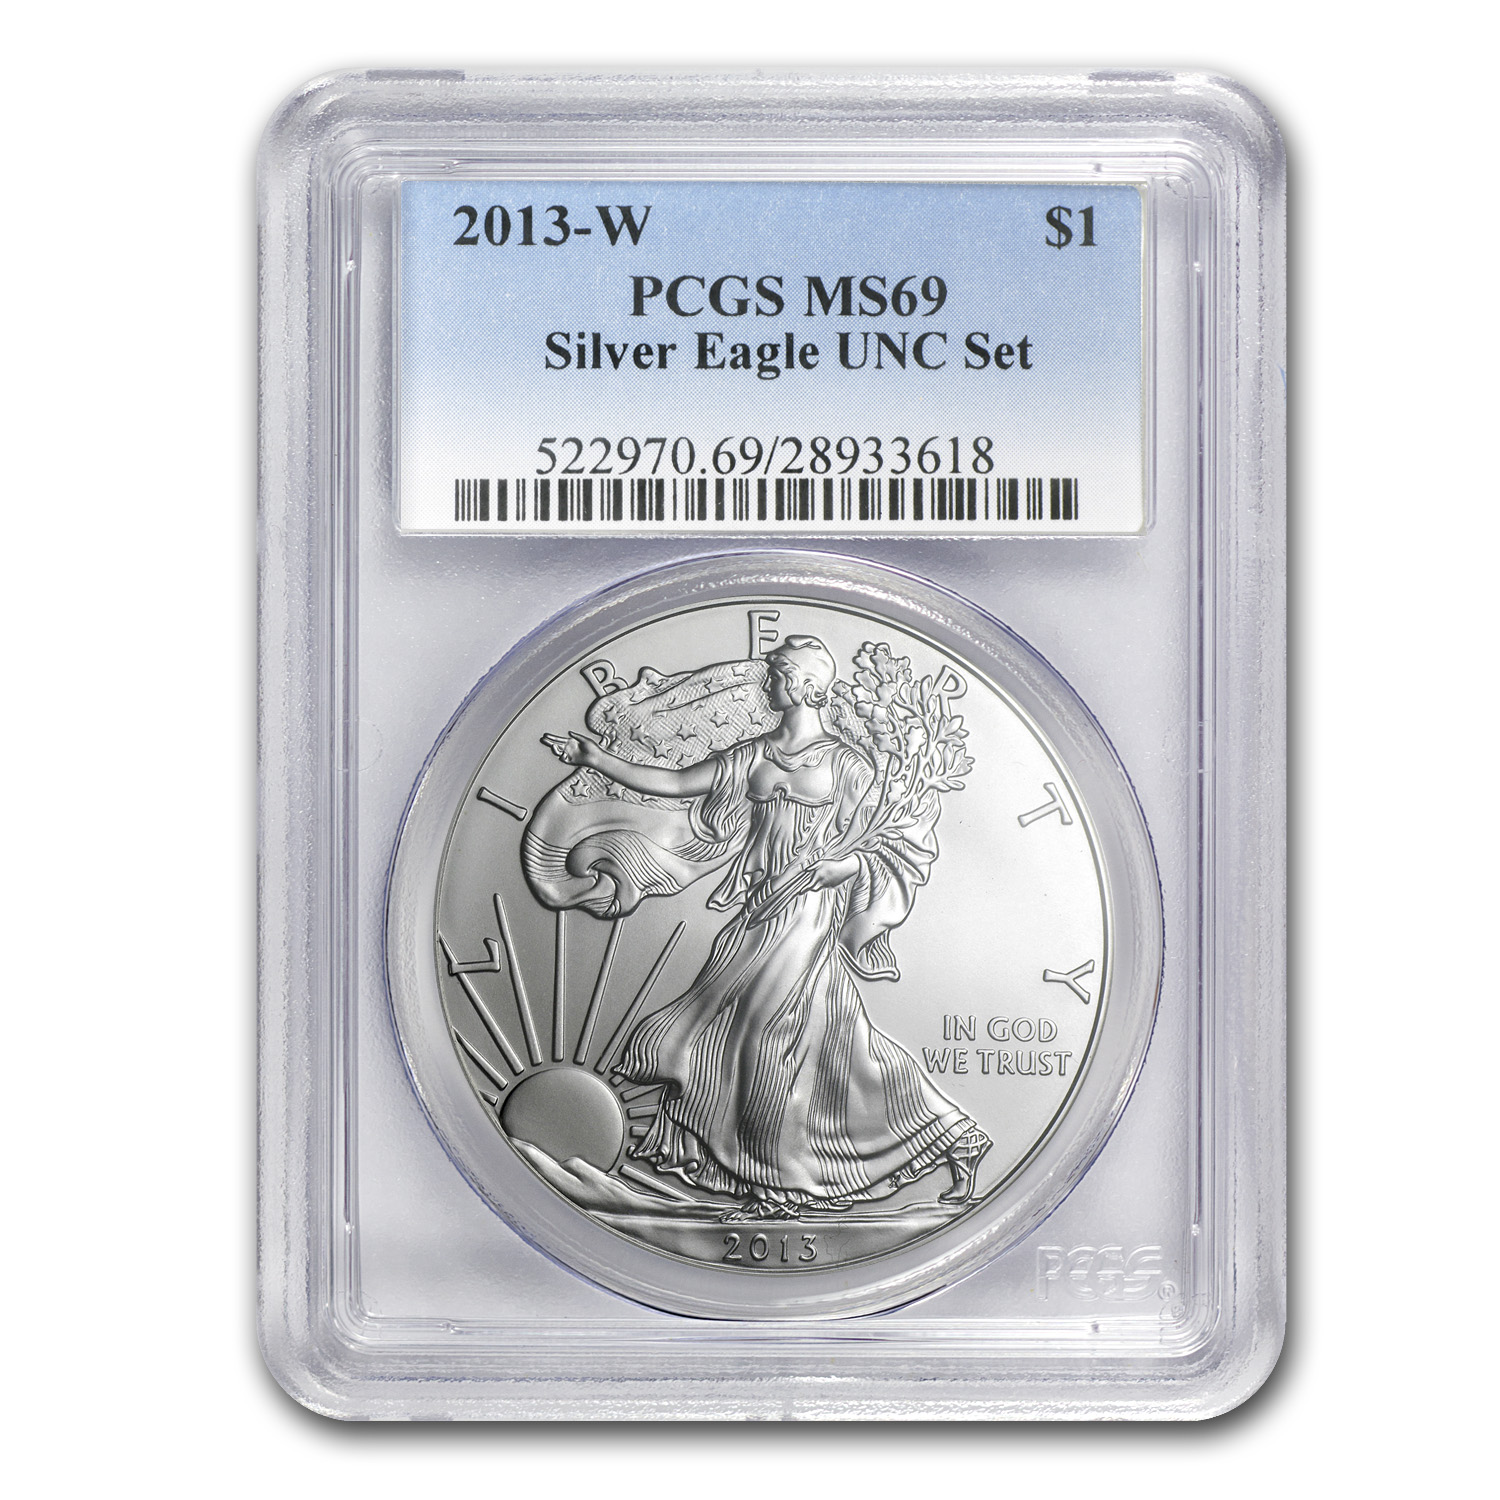 2013-W Burnished Silver American Eagle MS-69 PCGS (from Unc Set)